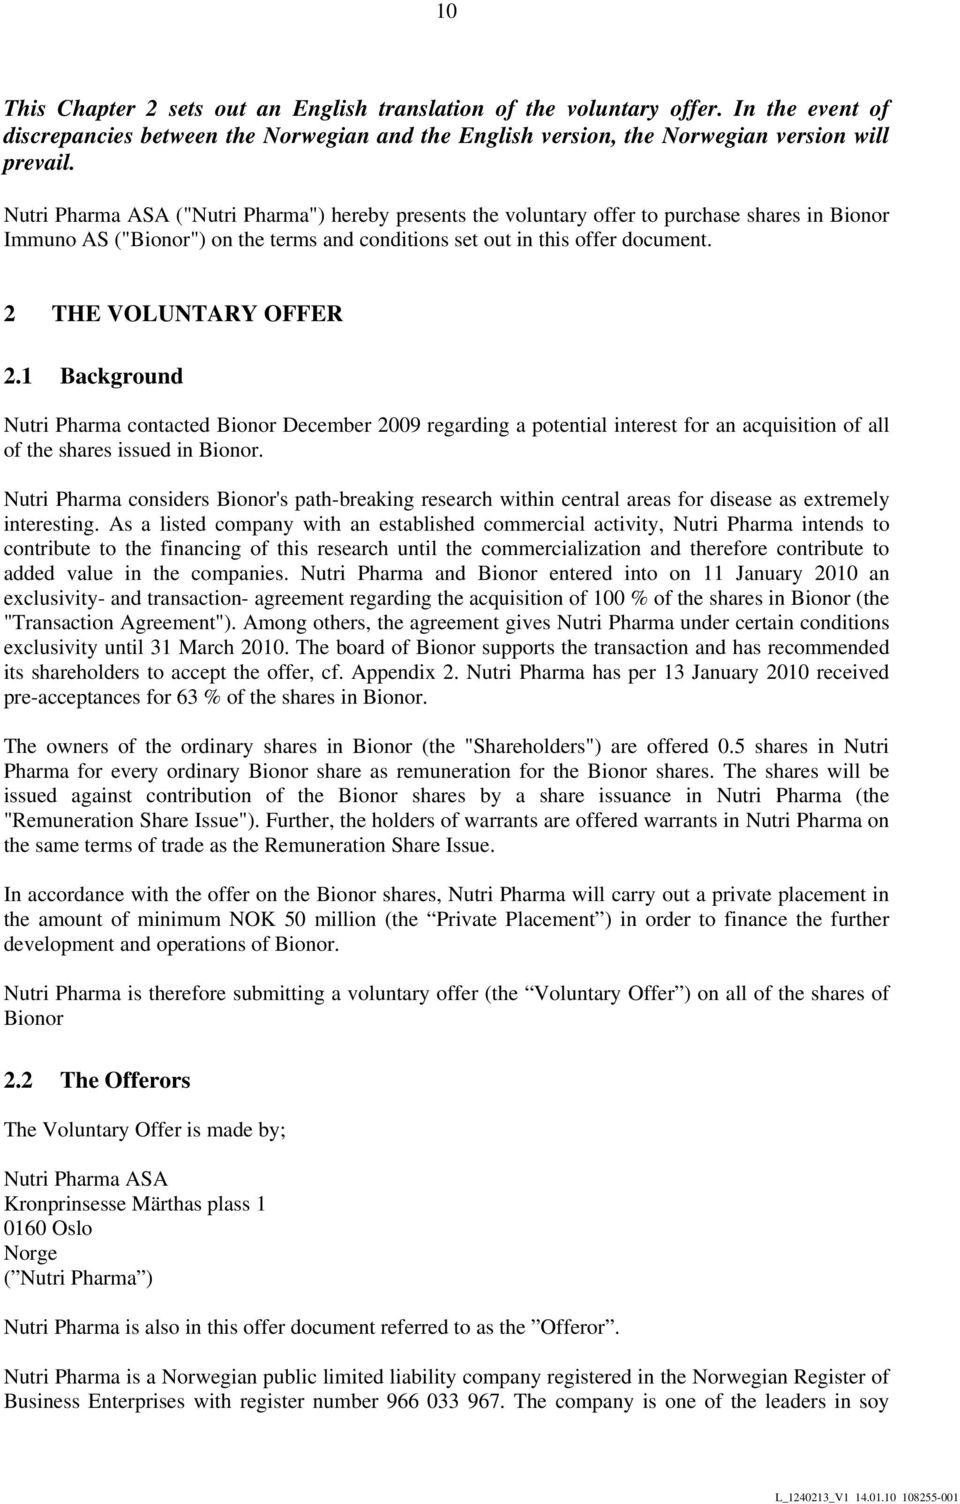 2 THE VOLUNTARY OFFER 2.1 Background Nutri Pharma contacted Bionor December 2009 regarding a potential interest for an acquisition of all of the shares issued in Bionor.